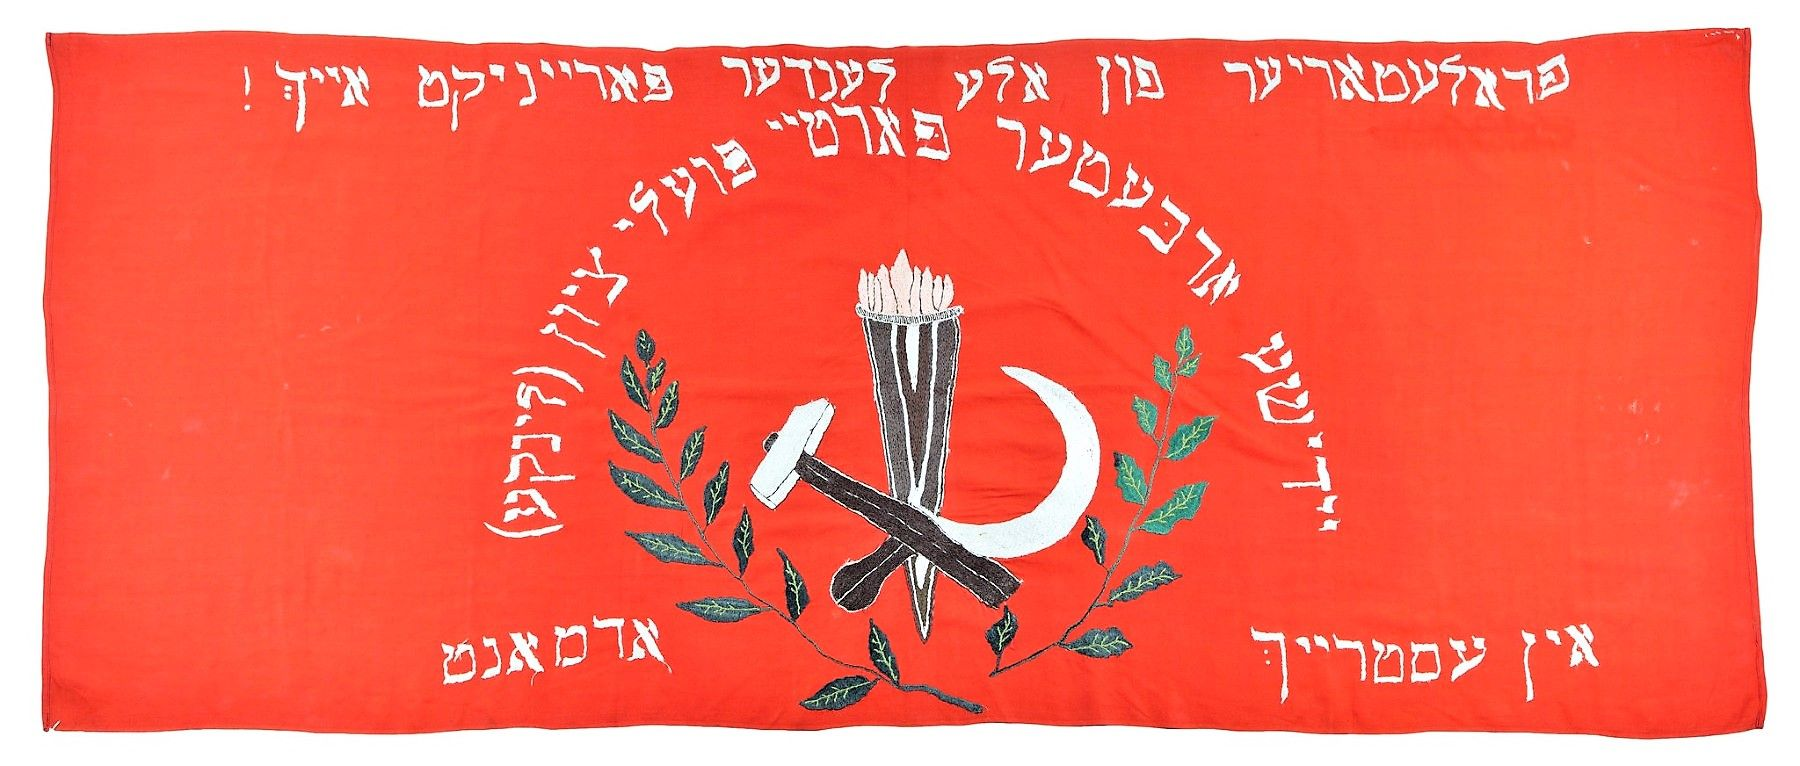 Poale Zion Jewish Workers Party Yiddish Banner Ca 1947 Workers Of All Nations Unite Sebastian Gansrigler